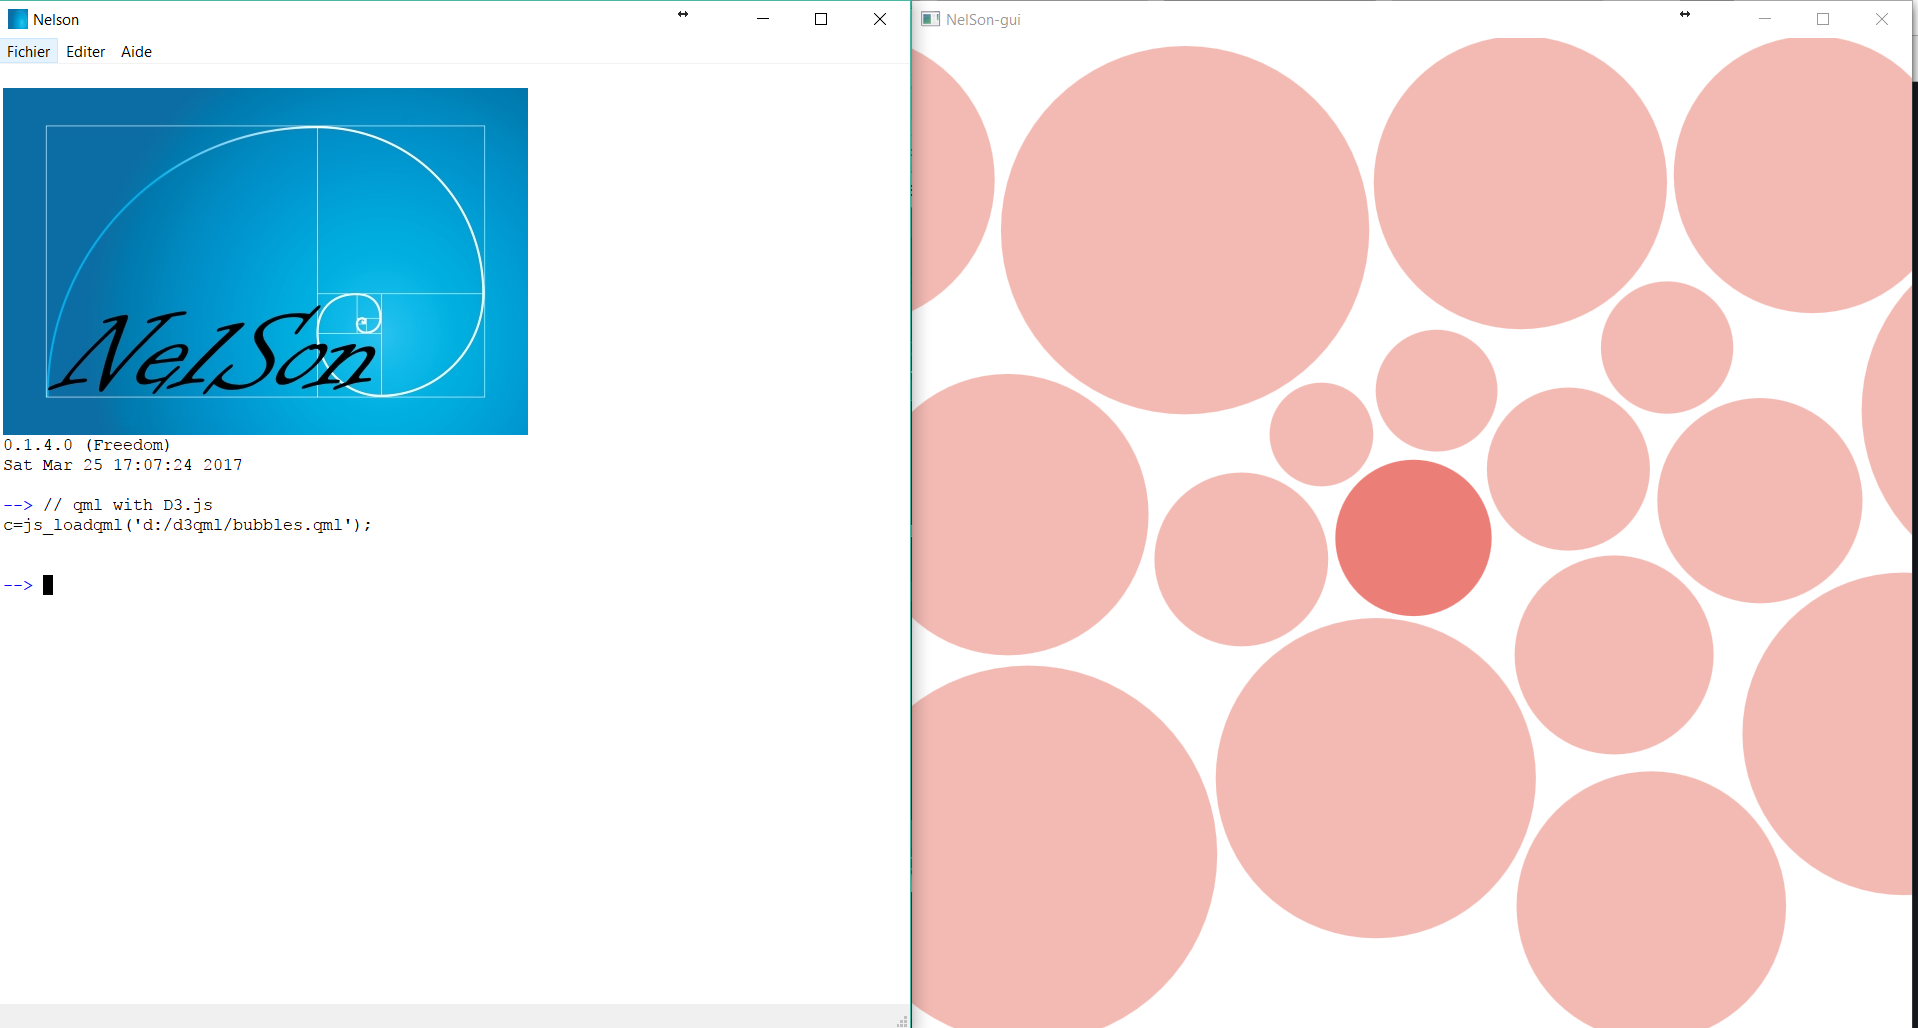 Nelson interaction with QML and D3.js